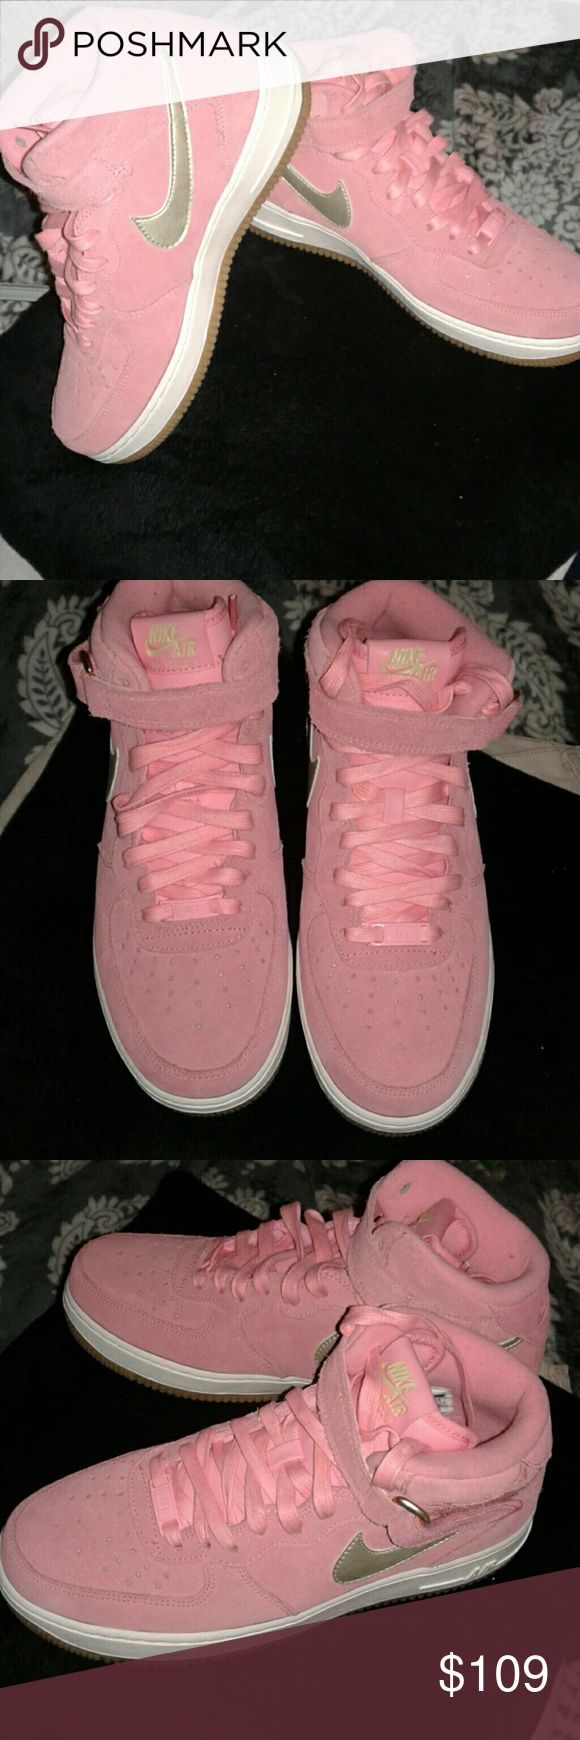 Nike Air Force One's Pink shoes! PINK suede Nike Air Force One's with silver stripe on side.  PINK laces.  Worn 1 time.  Protected with sneaker defense to repel water and dirt.  Very cute when worn with Jeans! Nike Shoes Sneakers